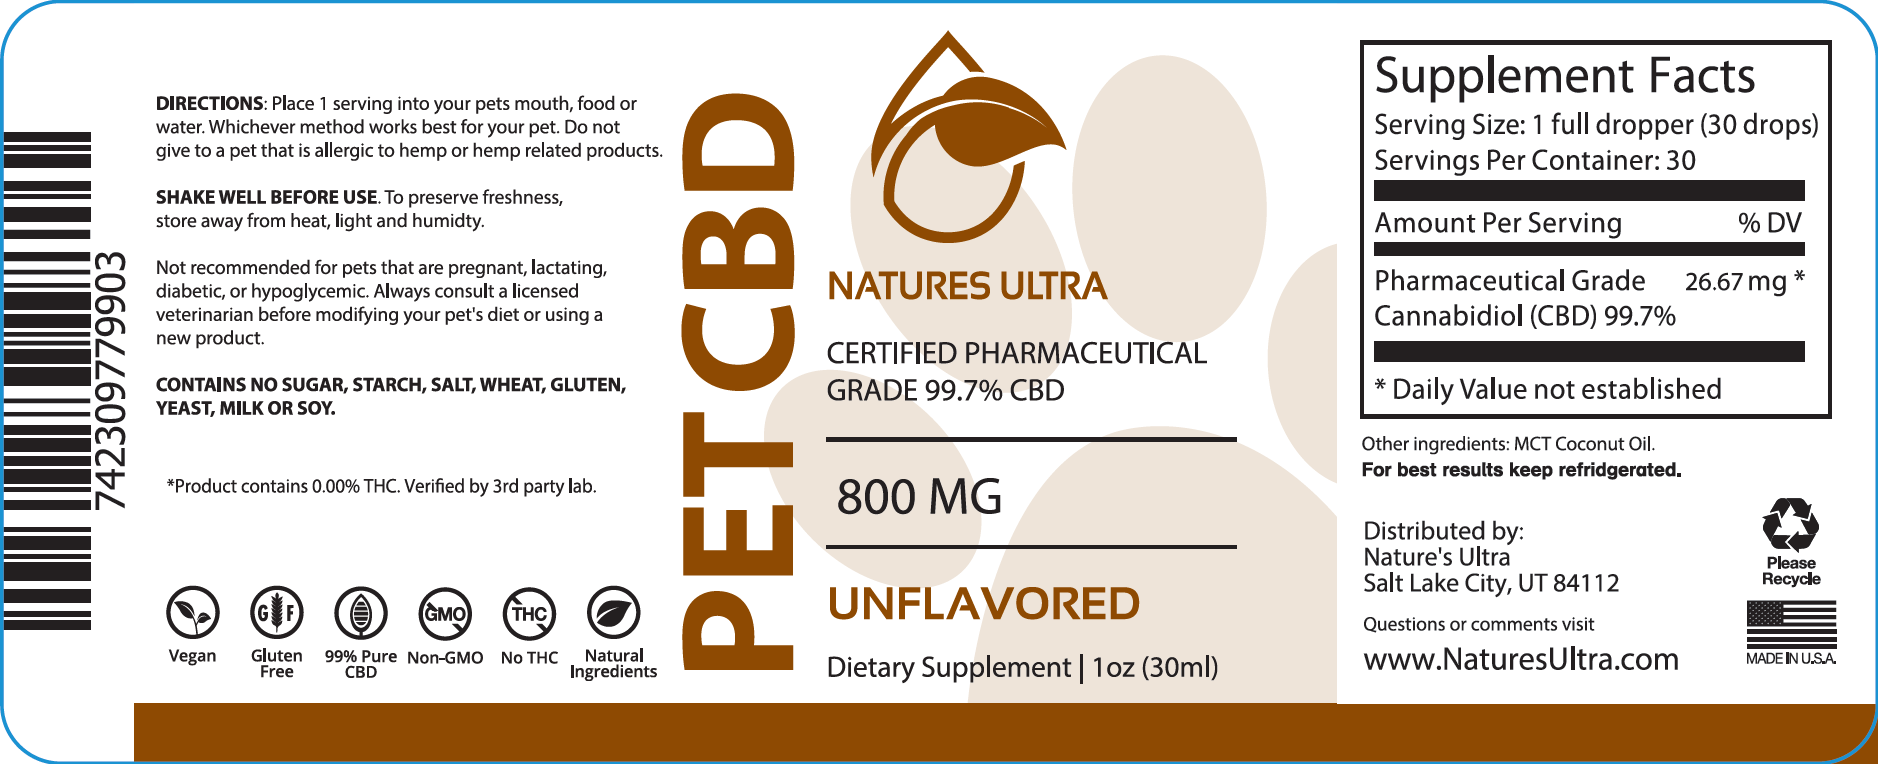 Product label for Pet CBD Oil from Nature's Ultra